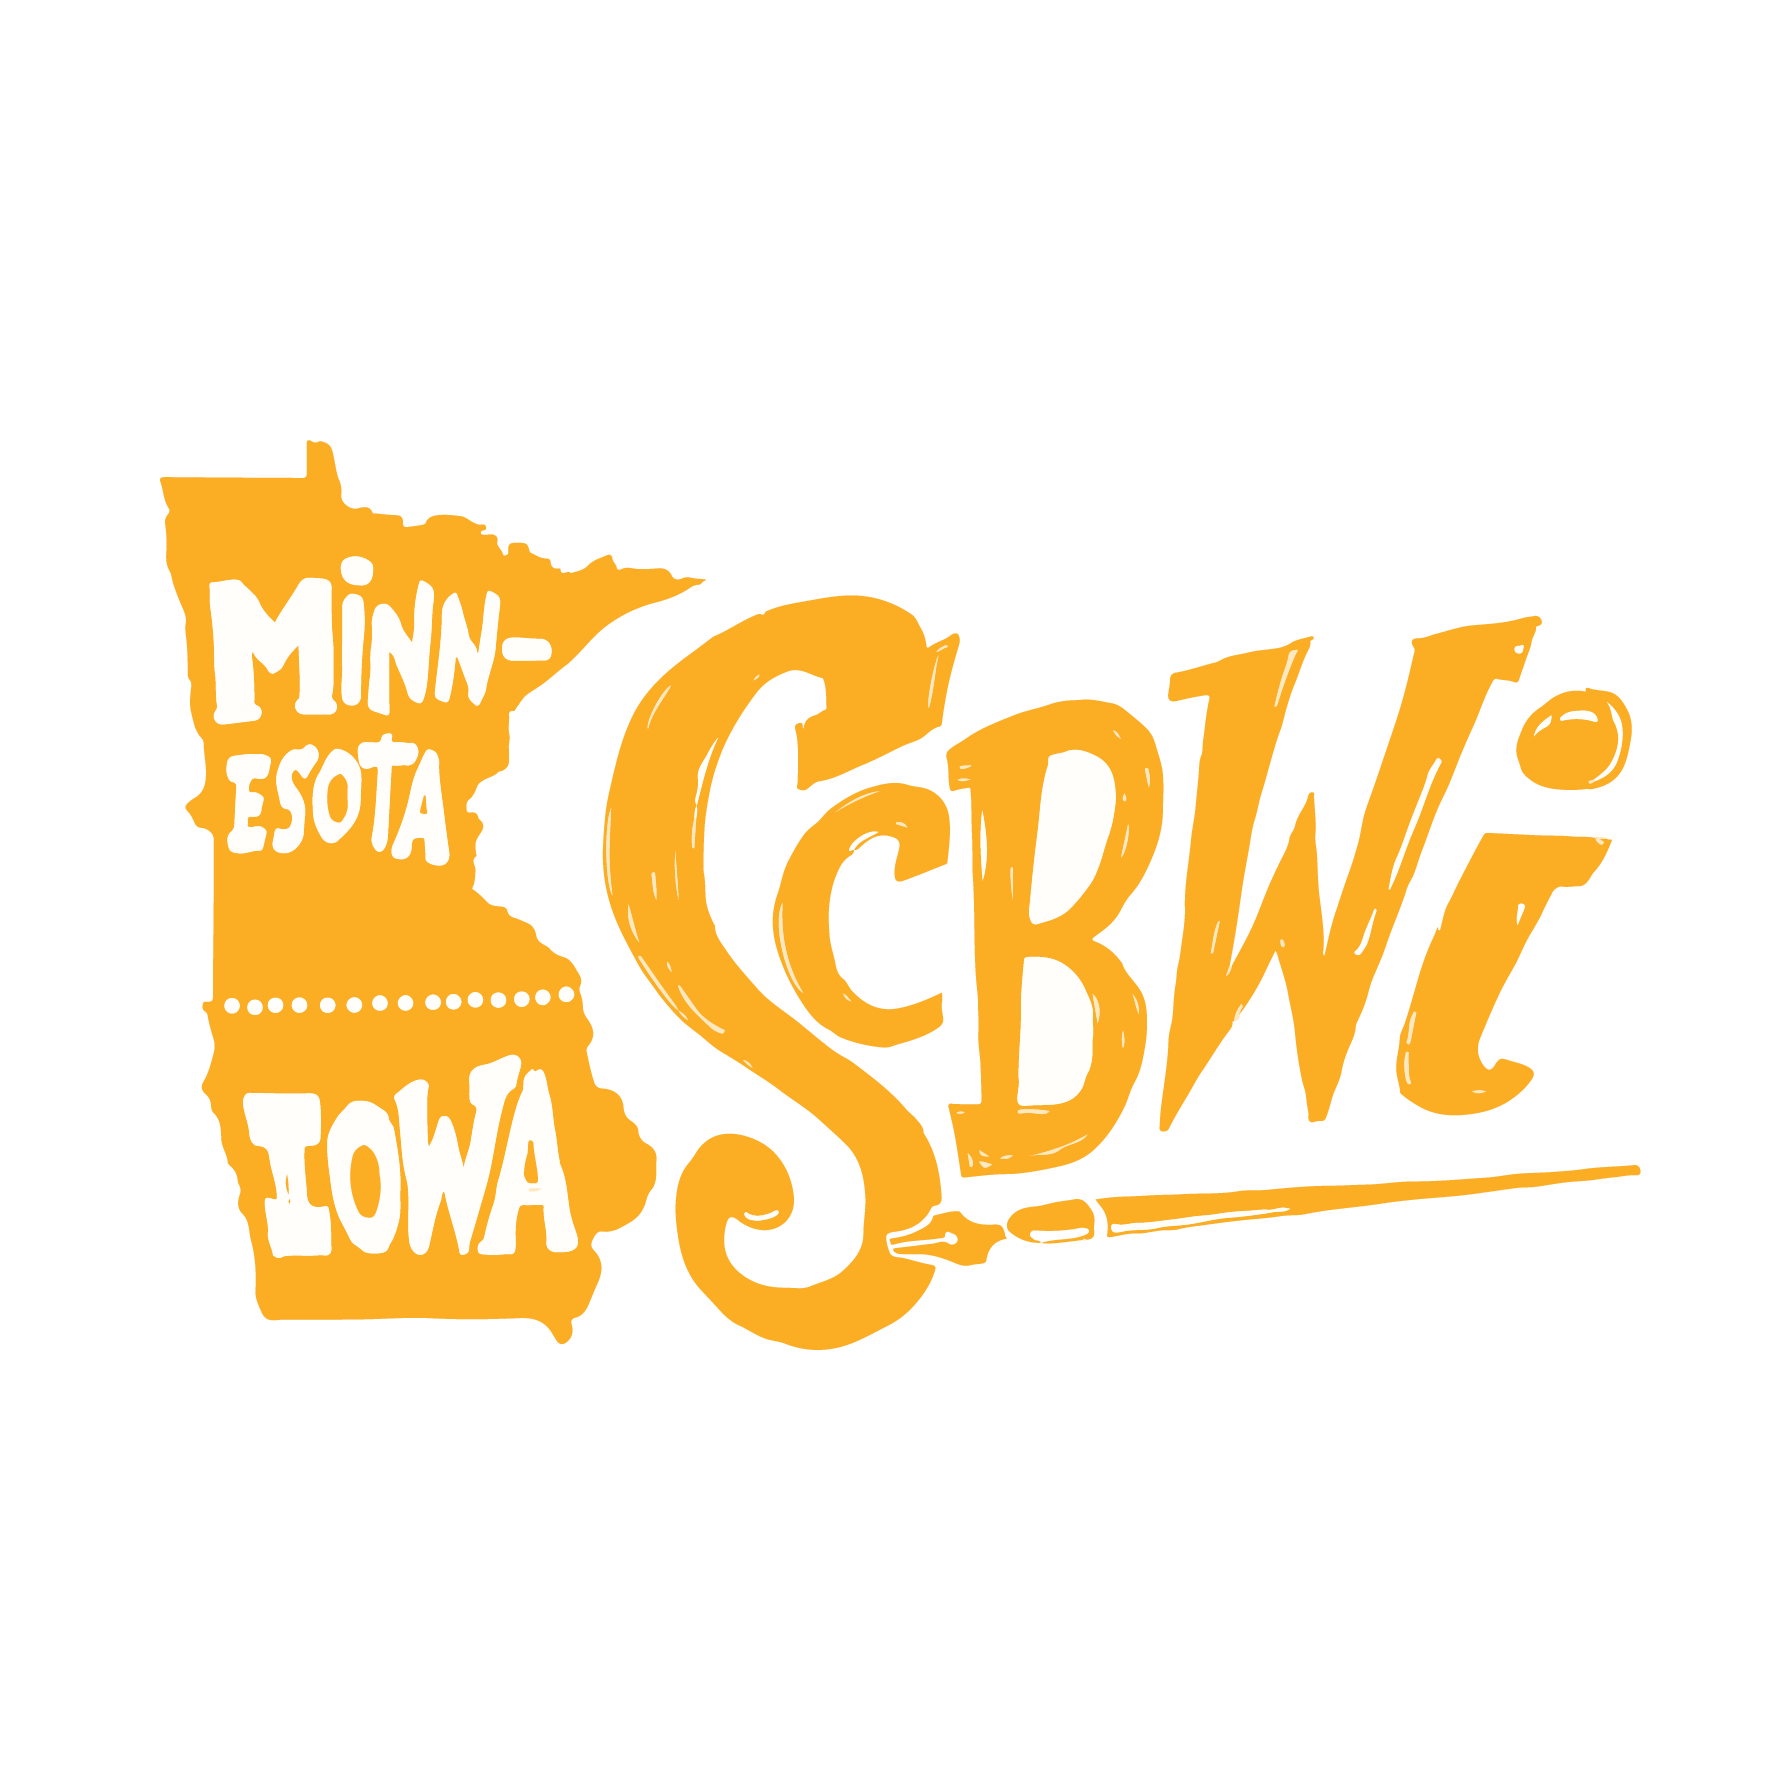 We would like to welcome a new group of writers to our awesome region! SCBWI-Minnesota has officially combined with us to create one big region. Together, we'll offer state-wide conferences and local events that feature lessons on craft; industry advice; and connections to great agents, art directors, editors, and authors. We look forward to writing new stories together!